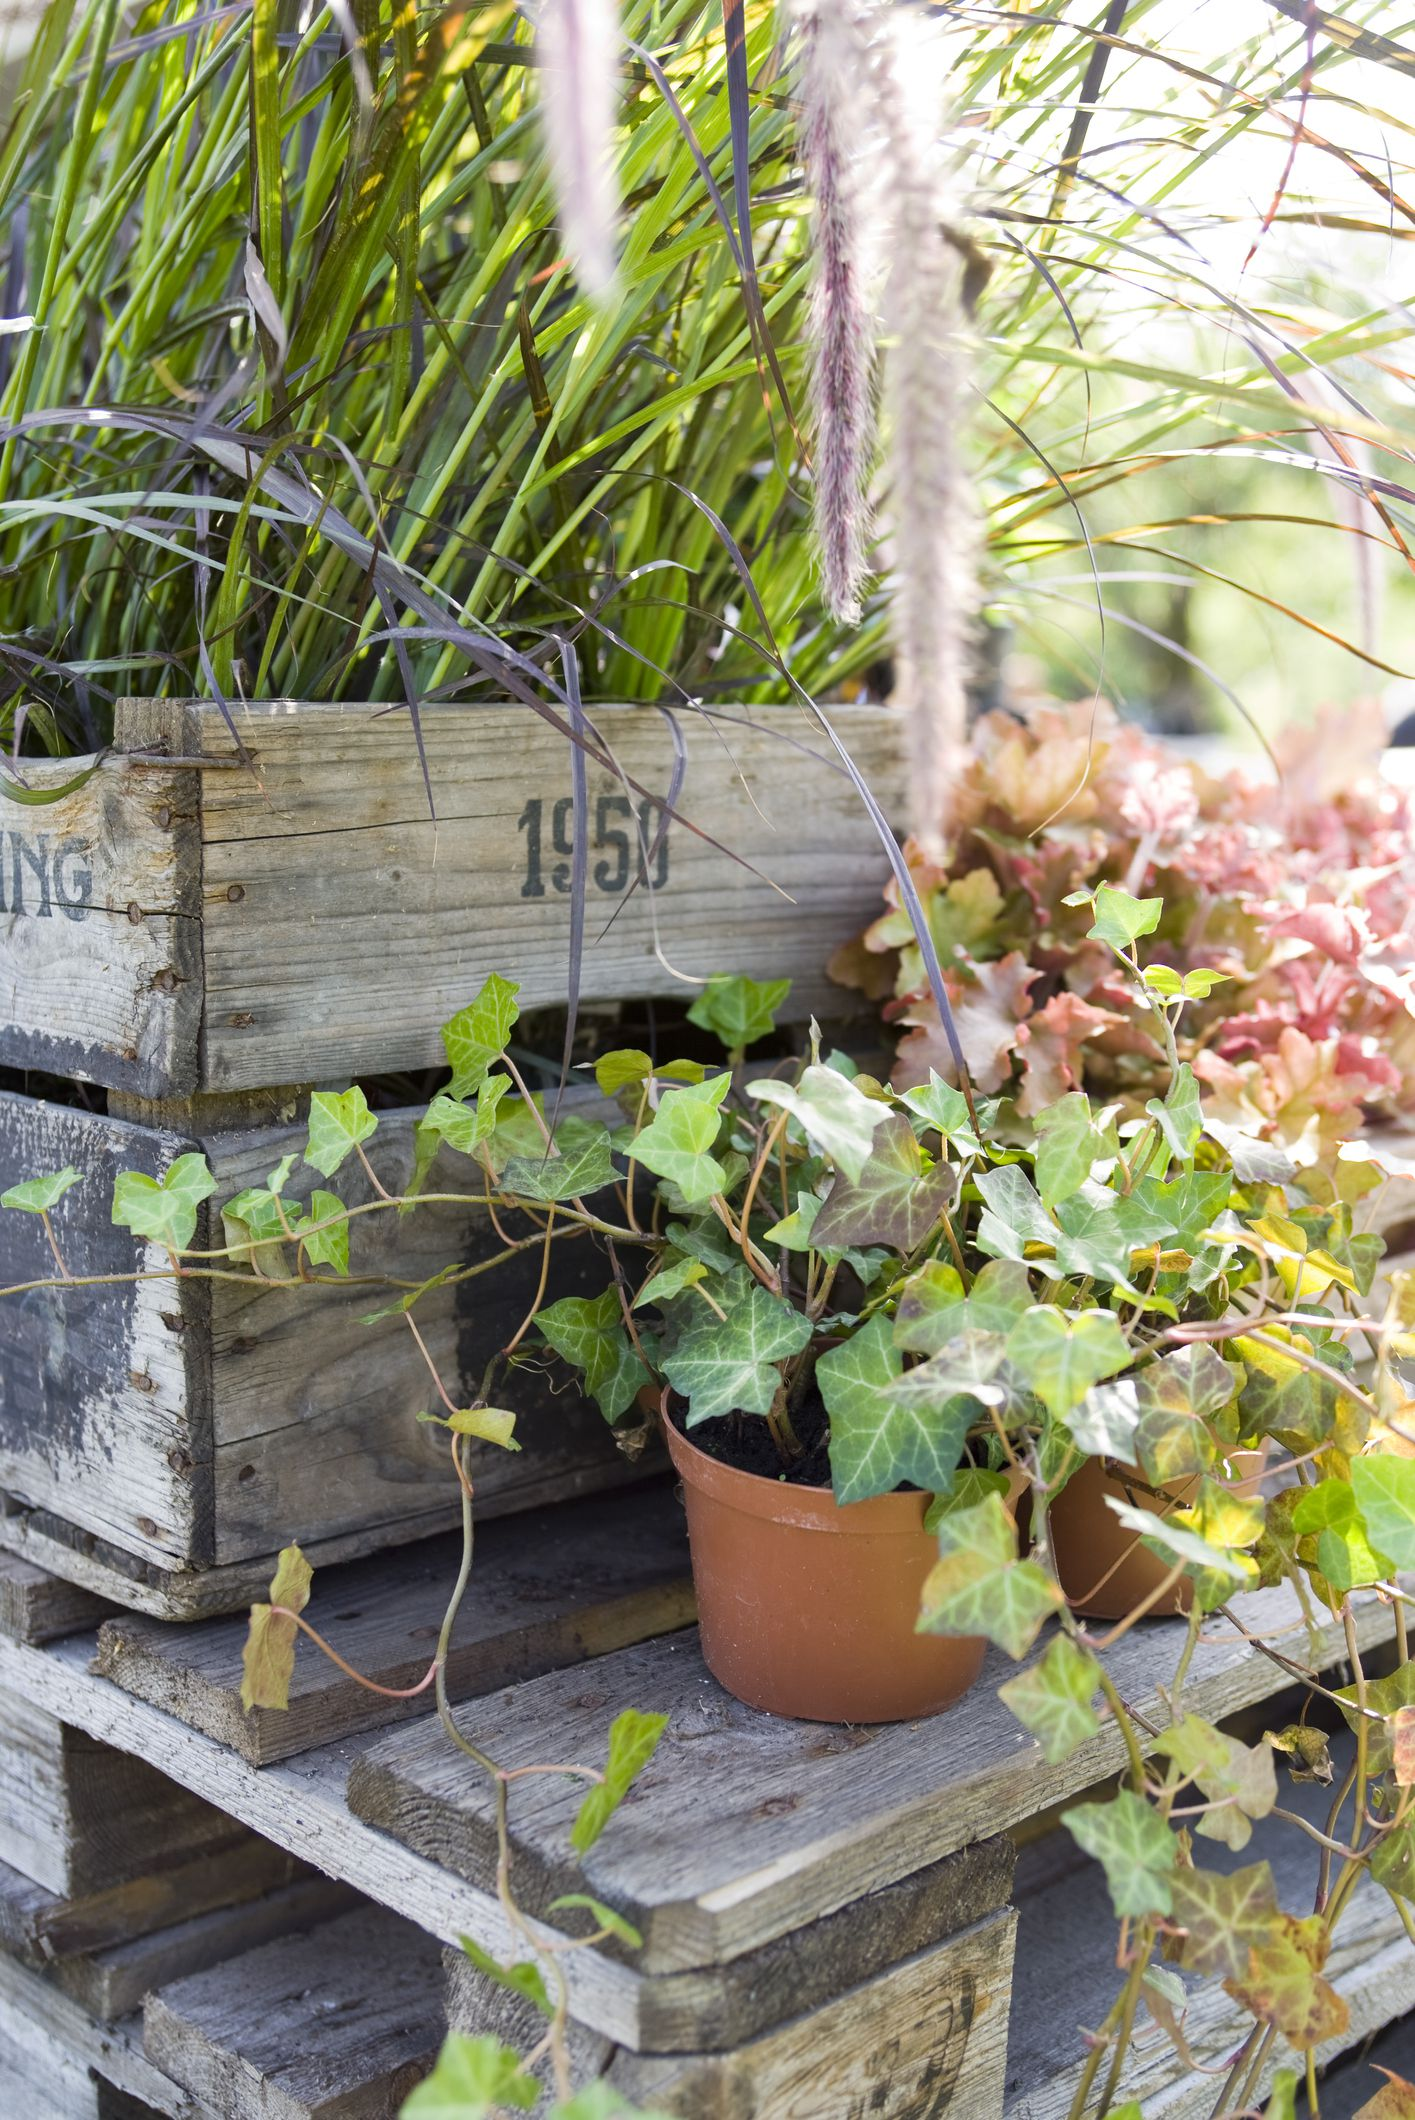 Growing Swedish Ivy Indoors For Foliage And Flowers